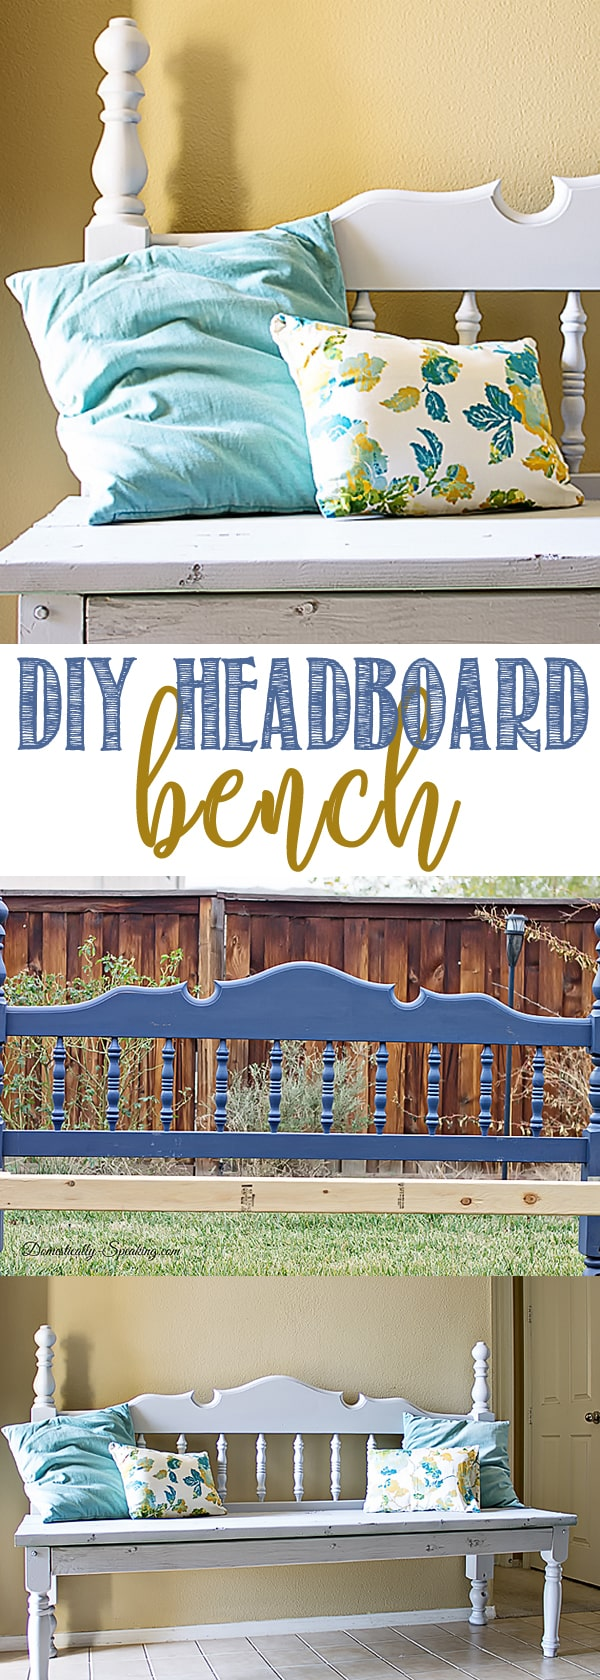 DIY Headboard Bench made from roadside rescues, garage sale leftovers and other freebies